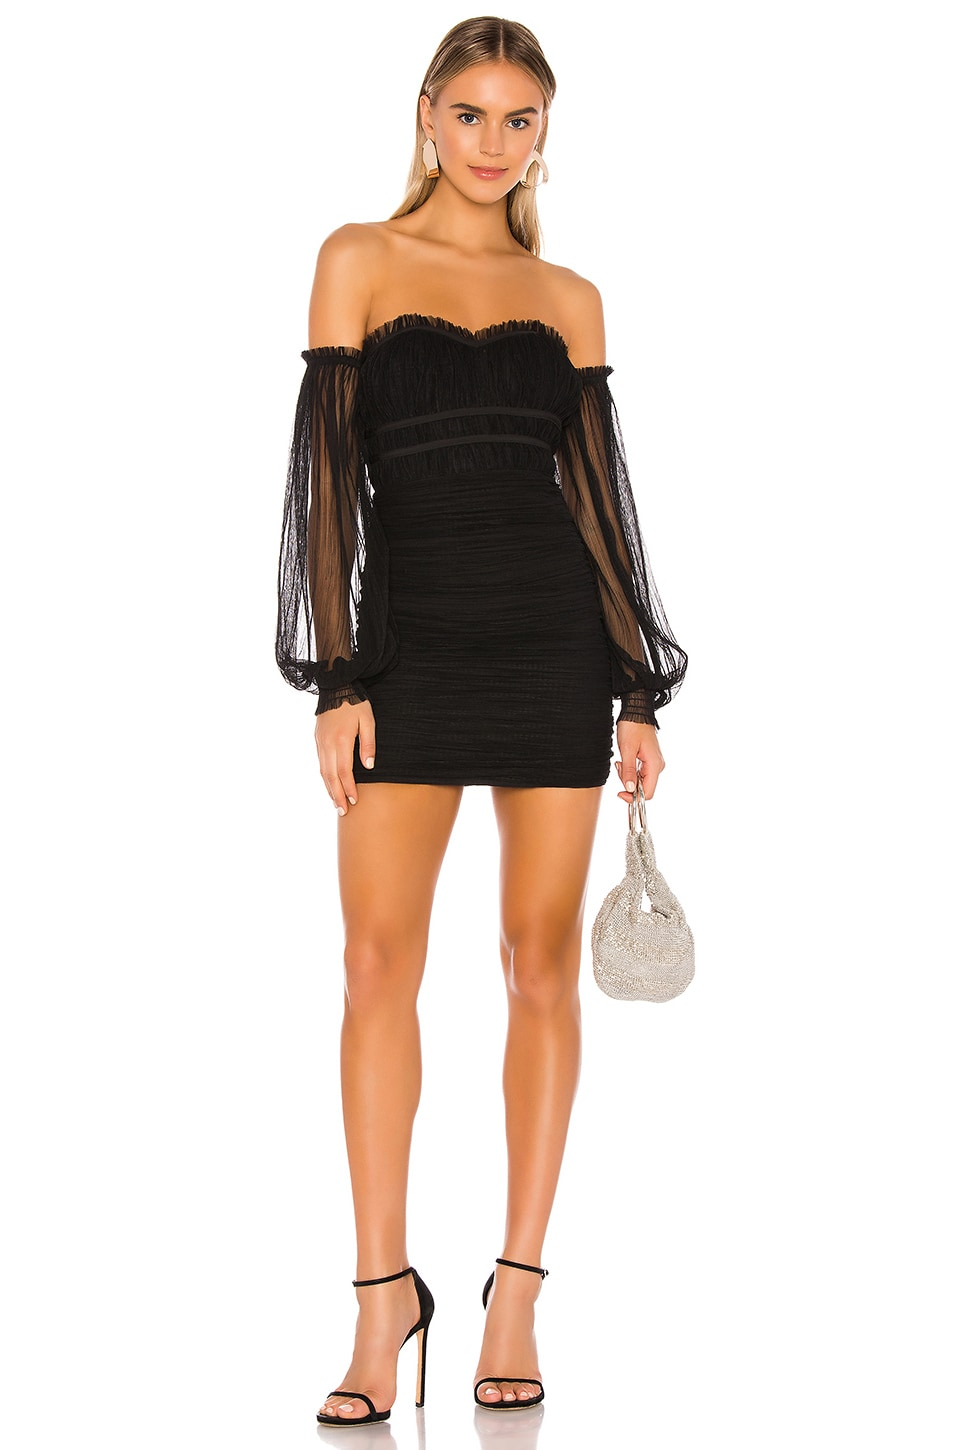 MAJORELLE Zata Dress in Black